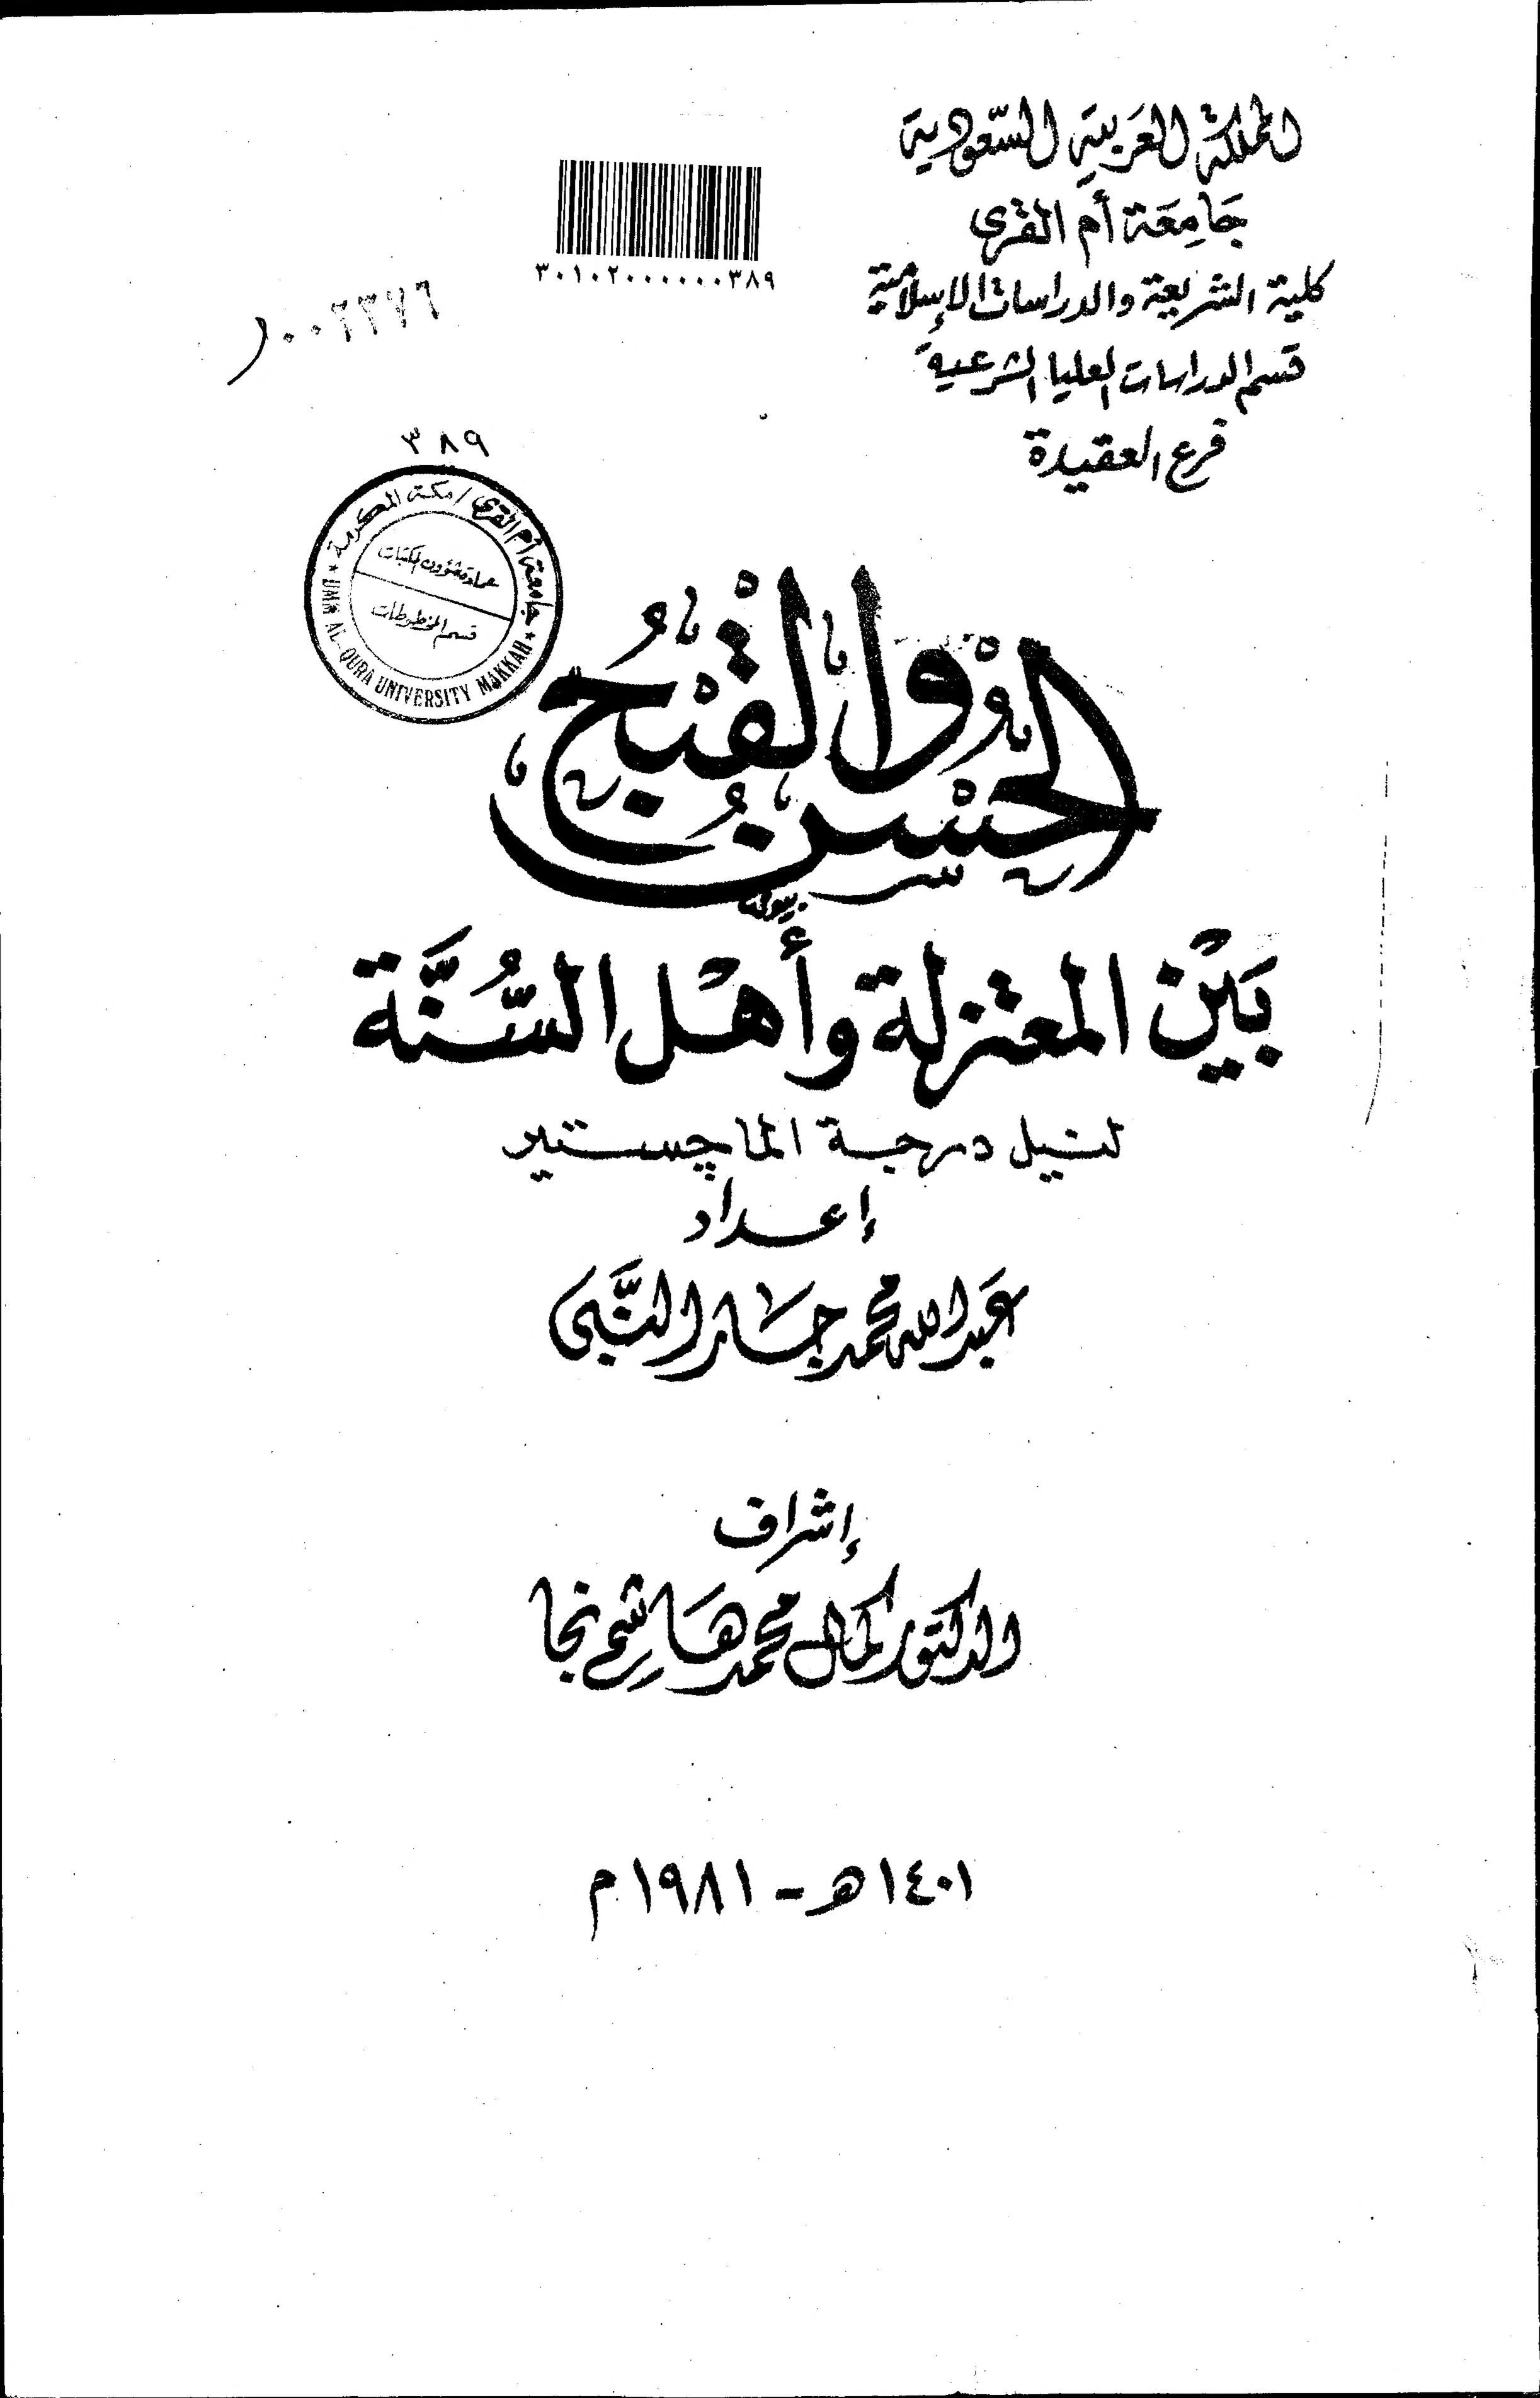 رسائل جامعية في العقيدة جامعة أم القرى رحيق الكتب Free Download Borrow And Streaming Internet Archive Books Free Download Pdf Warrior Quotes Book Worth Reading